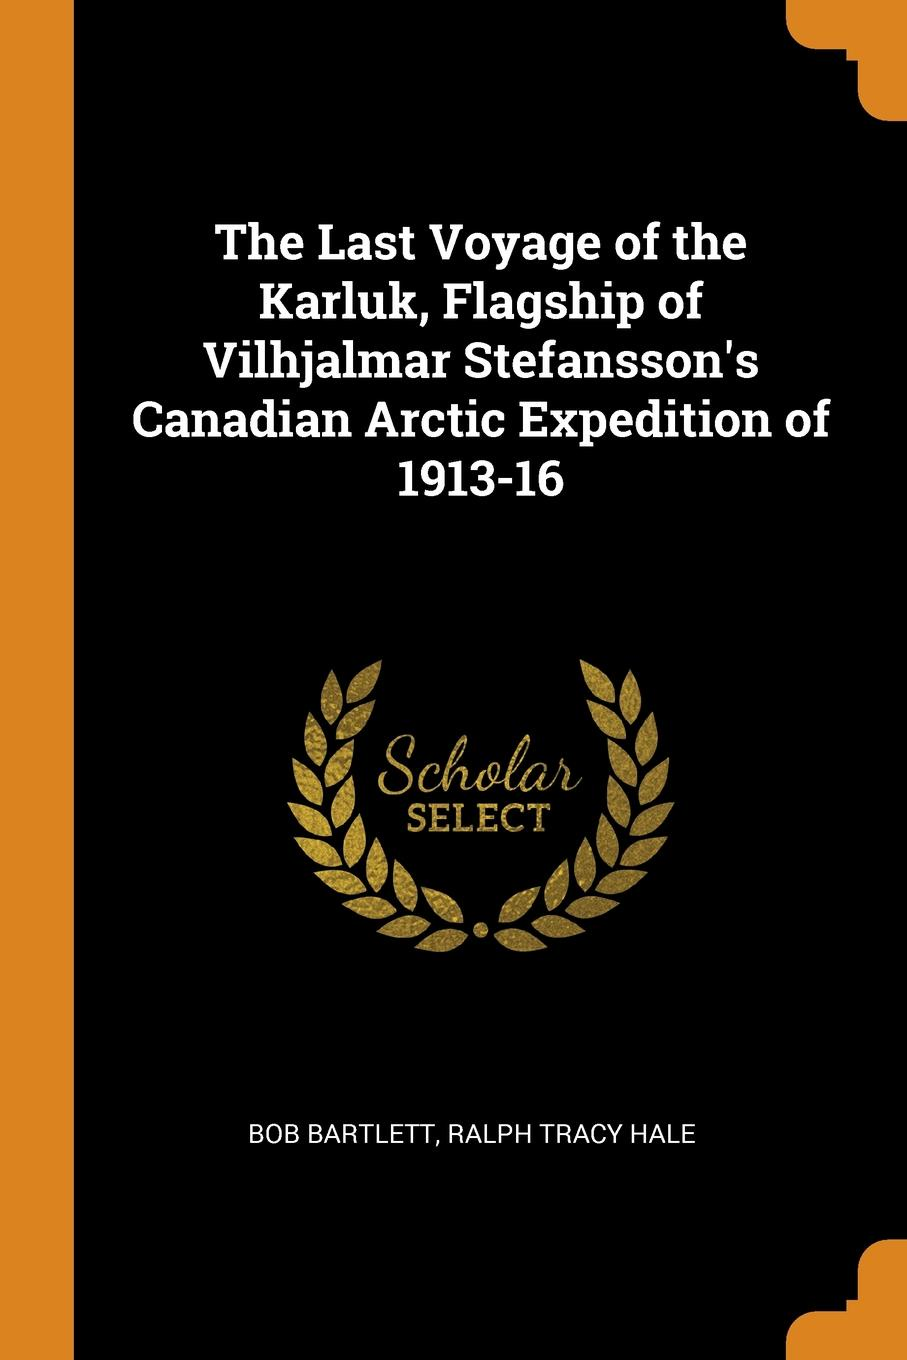 Bob Bartlett, Ralph Tracy Hale The Last Voyage of the Karluk, Flagship of Vilhjalmar Stefansson.s Canadian Arctic Expedition of 1913-16